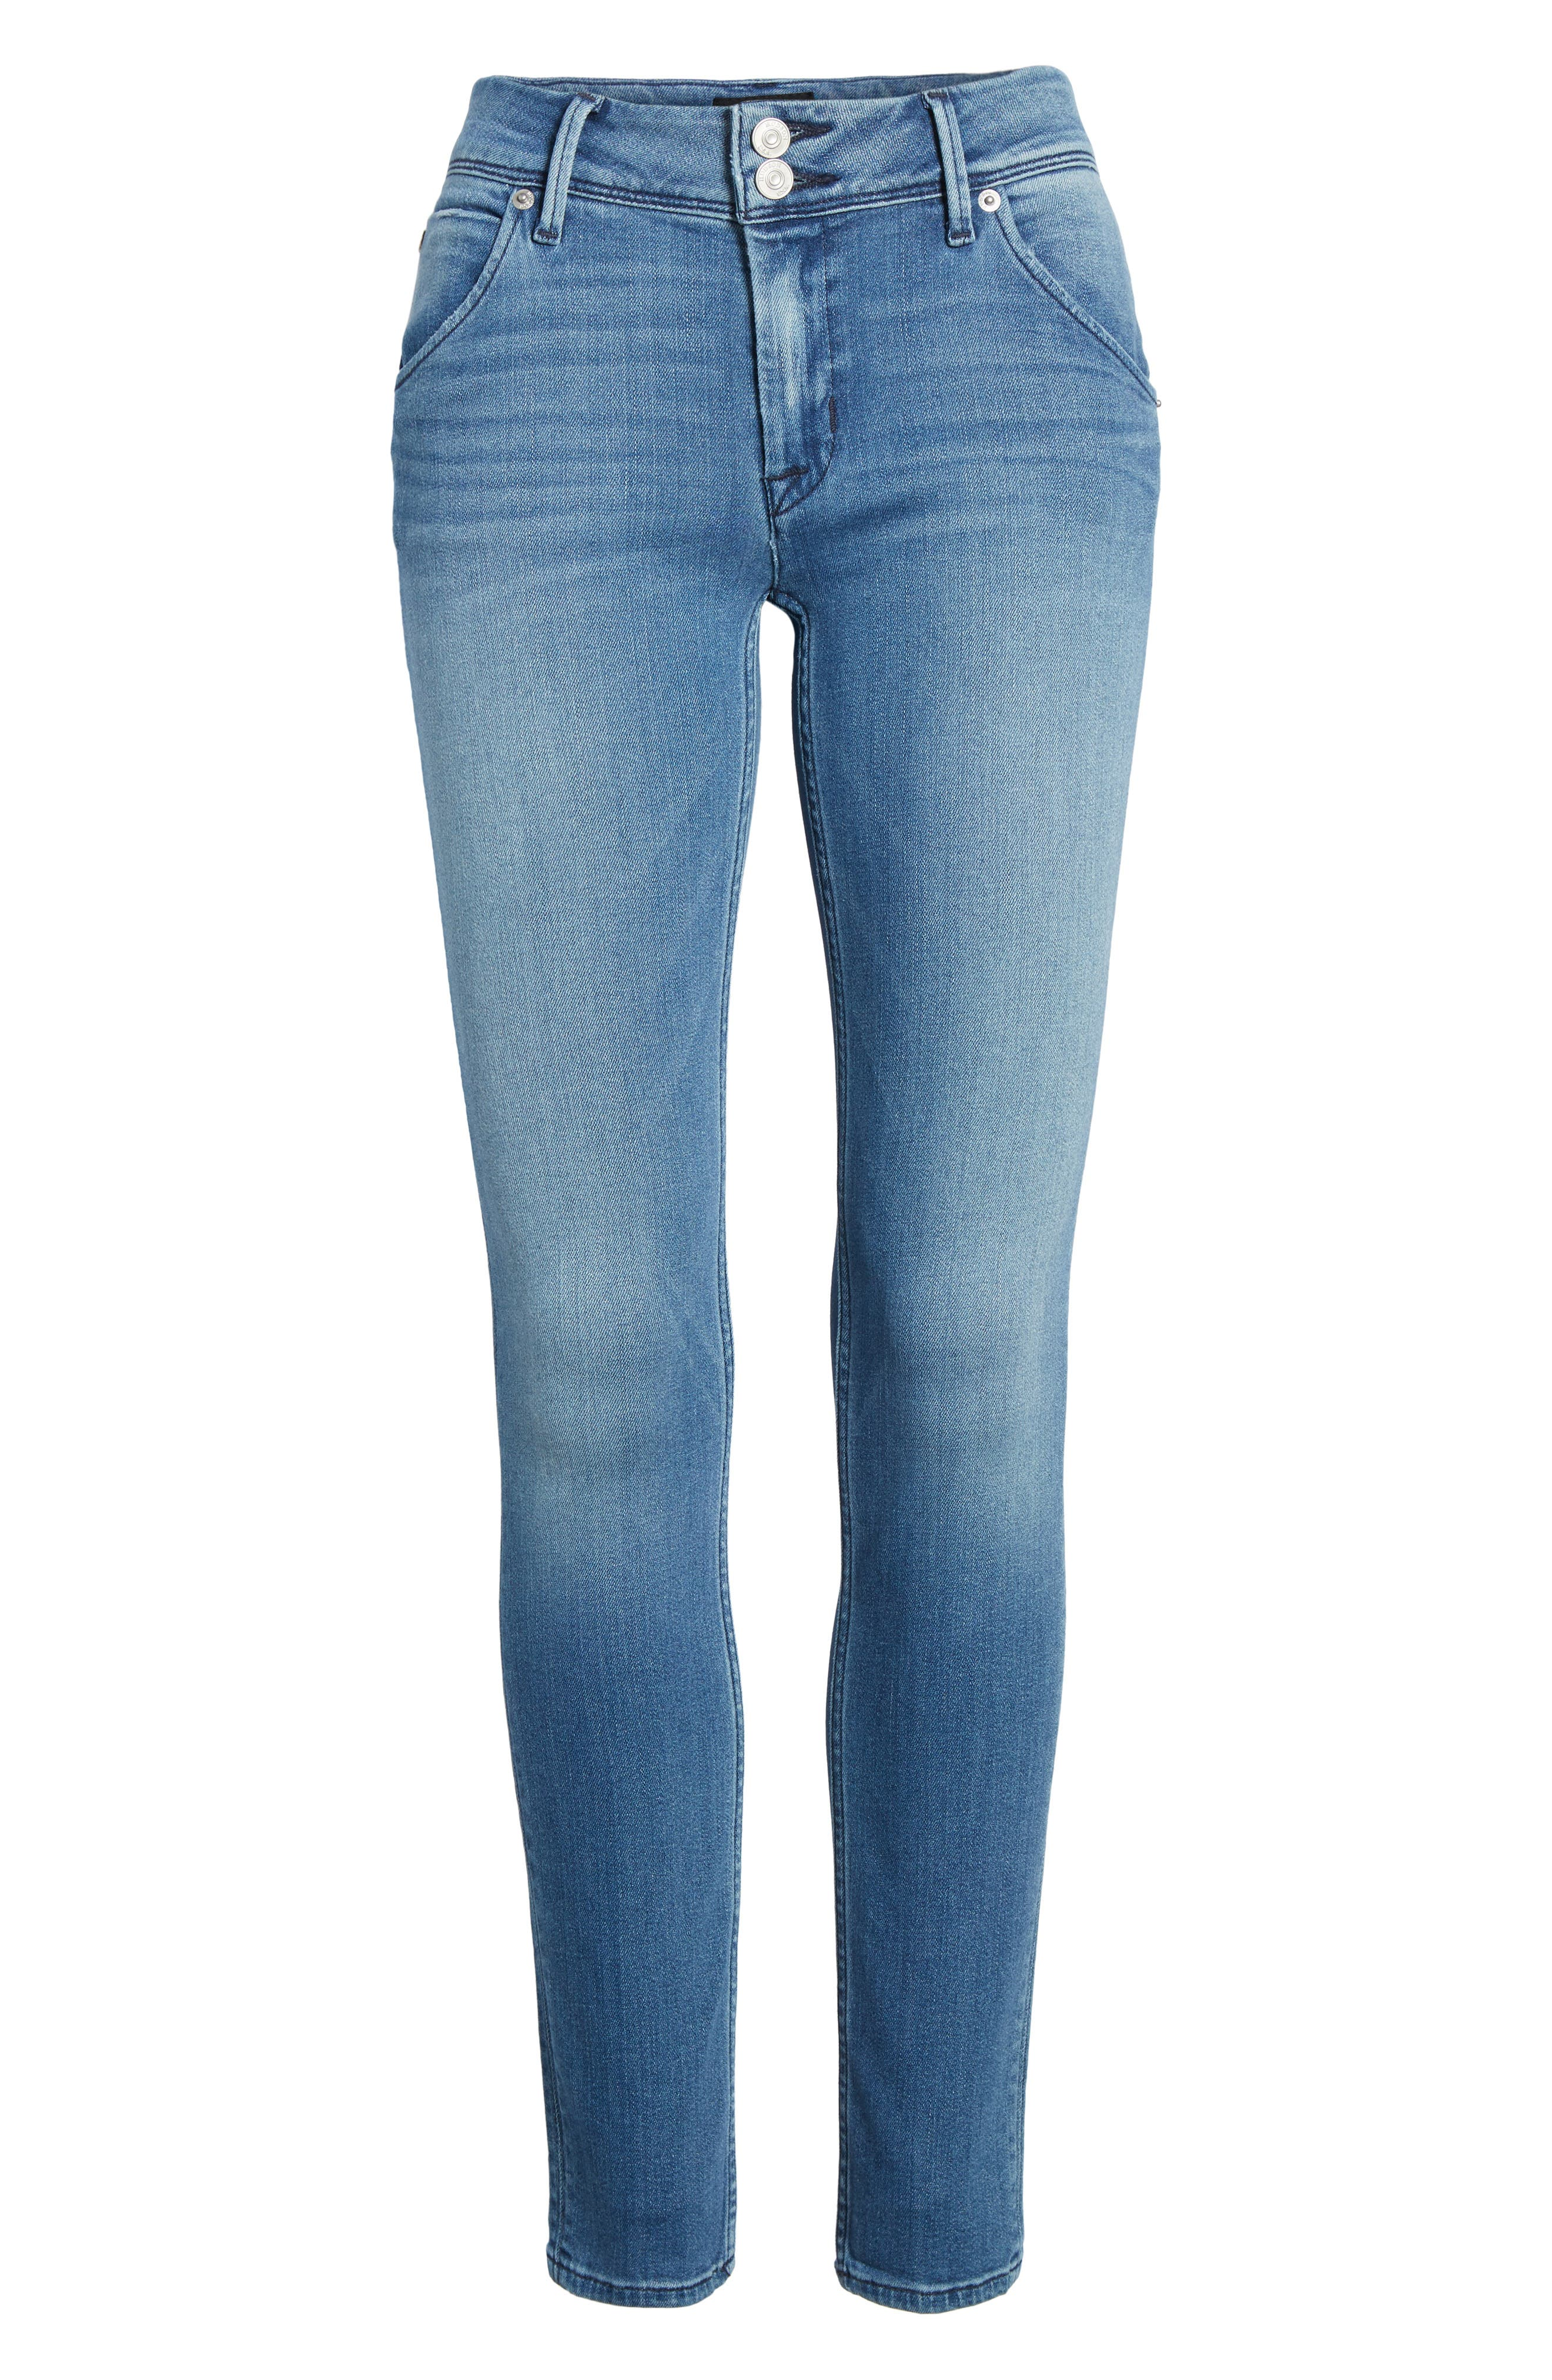 Collin Skinny Jeans,                             Alternate thumbnail 7, color,                             420